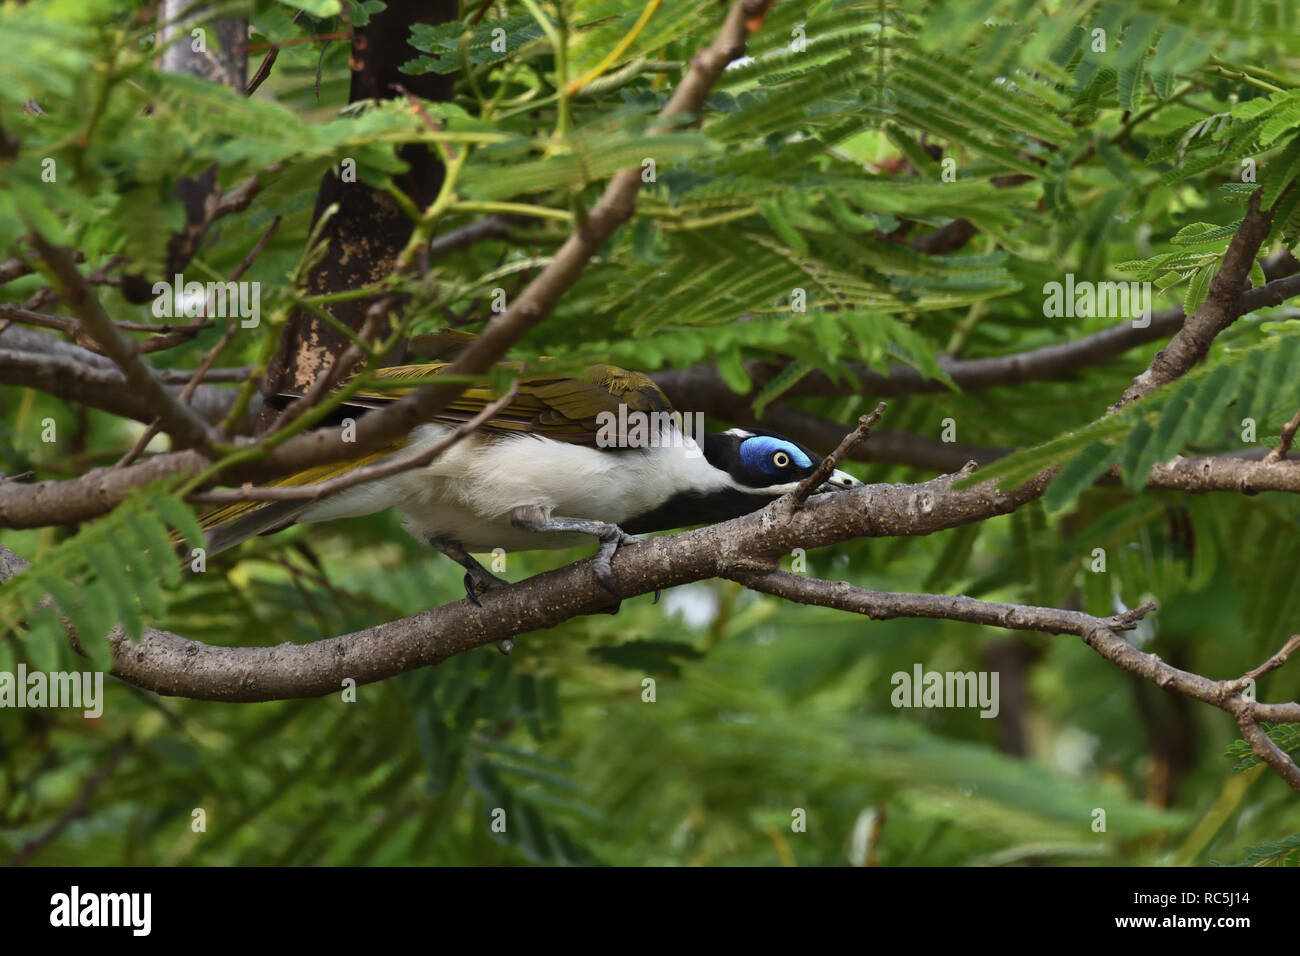 An Australian, Queensland Blue-faced Honeyeater ( Entomyzon cyanosis ) peering through branches and leaves looking for food Stock Photo